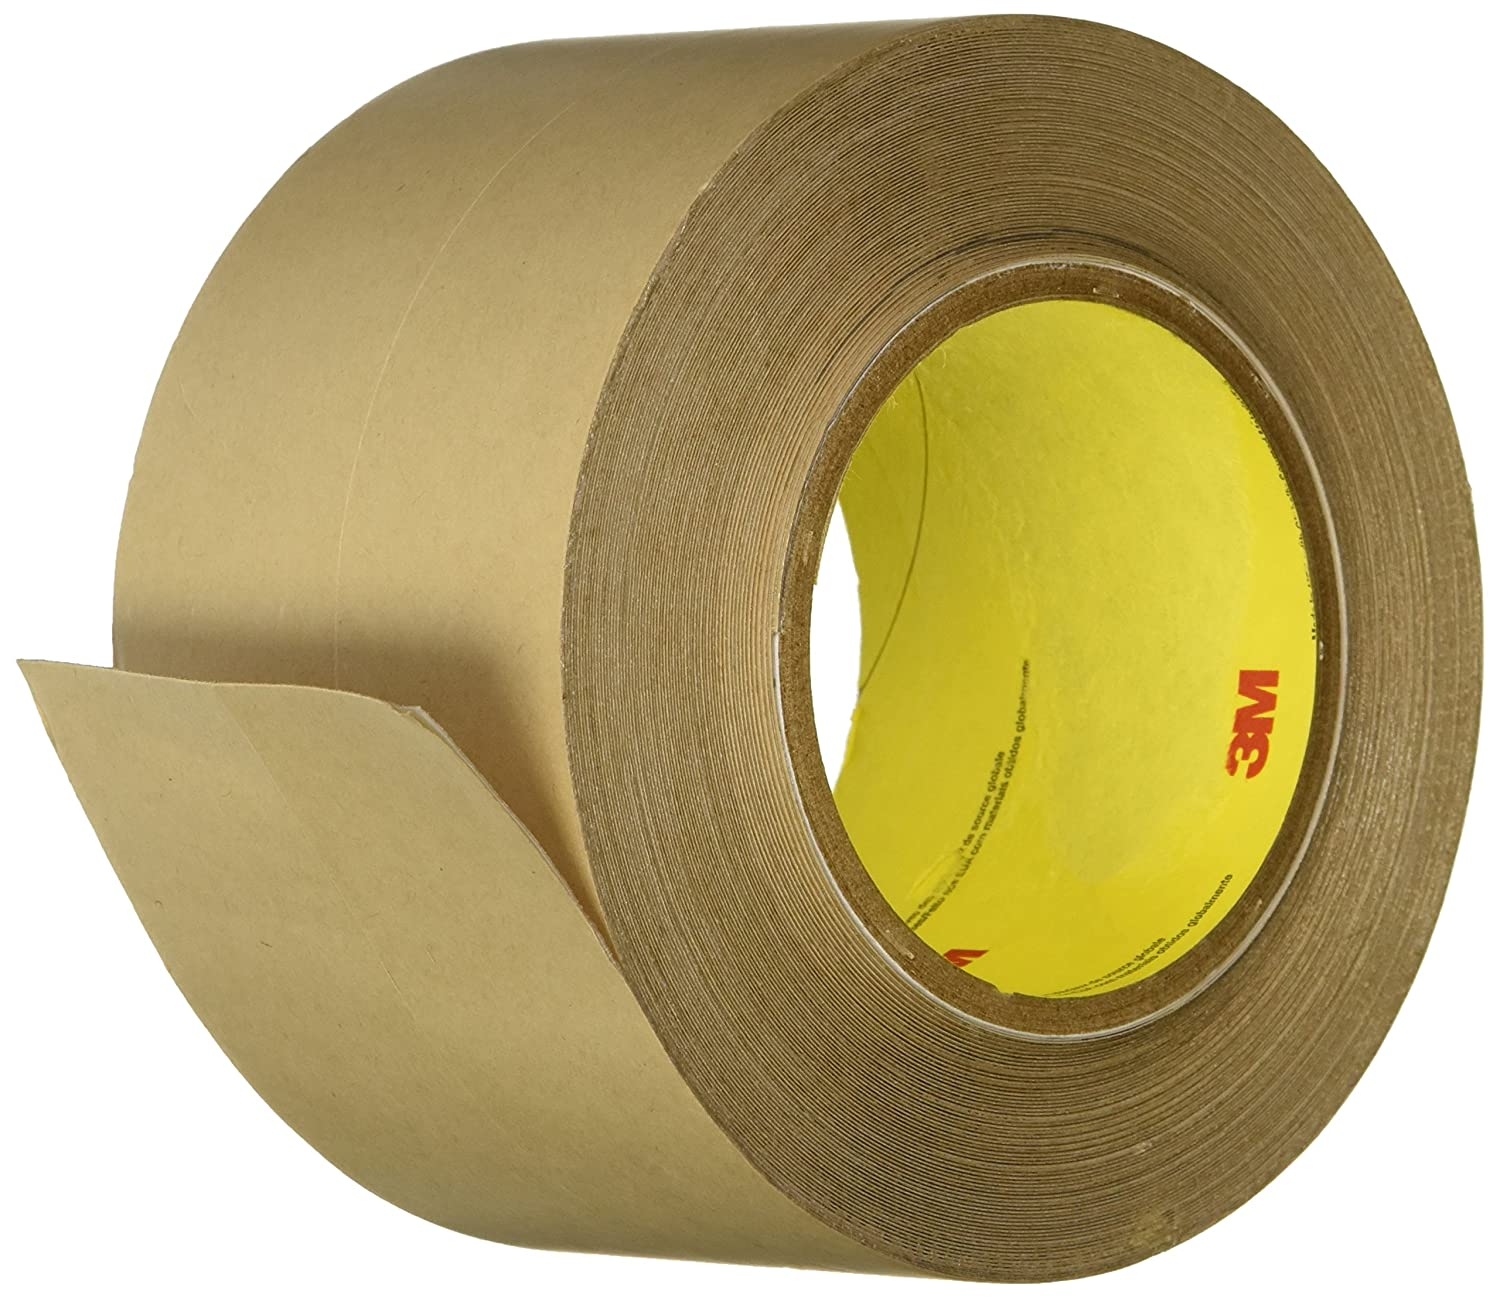 3M All Weather Flashing Tape 8067 Tan, 4 in x 75 ft Slit Liner (Pack of 1) 51115316203